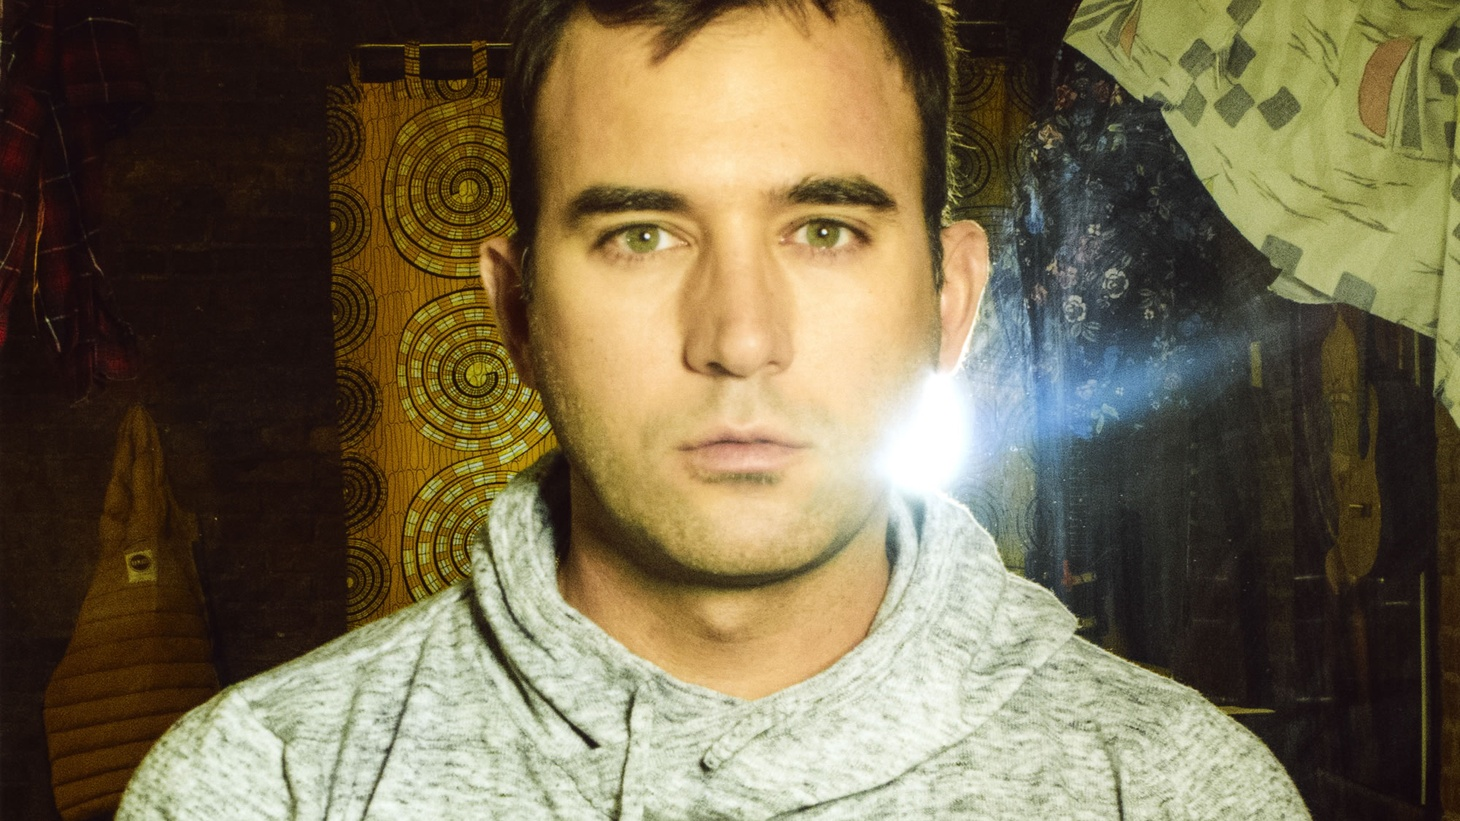 Sufjan Stevens puts together a mixtape of outtakes, unreleased songs, remixes and demos to create a companion piece to his last album, Carrie & Lowell.